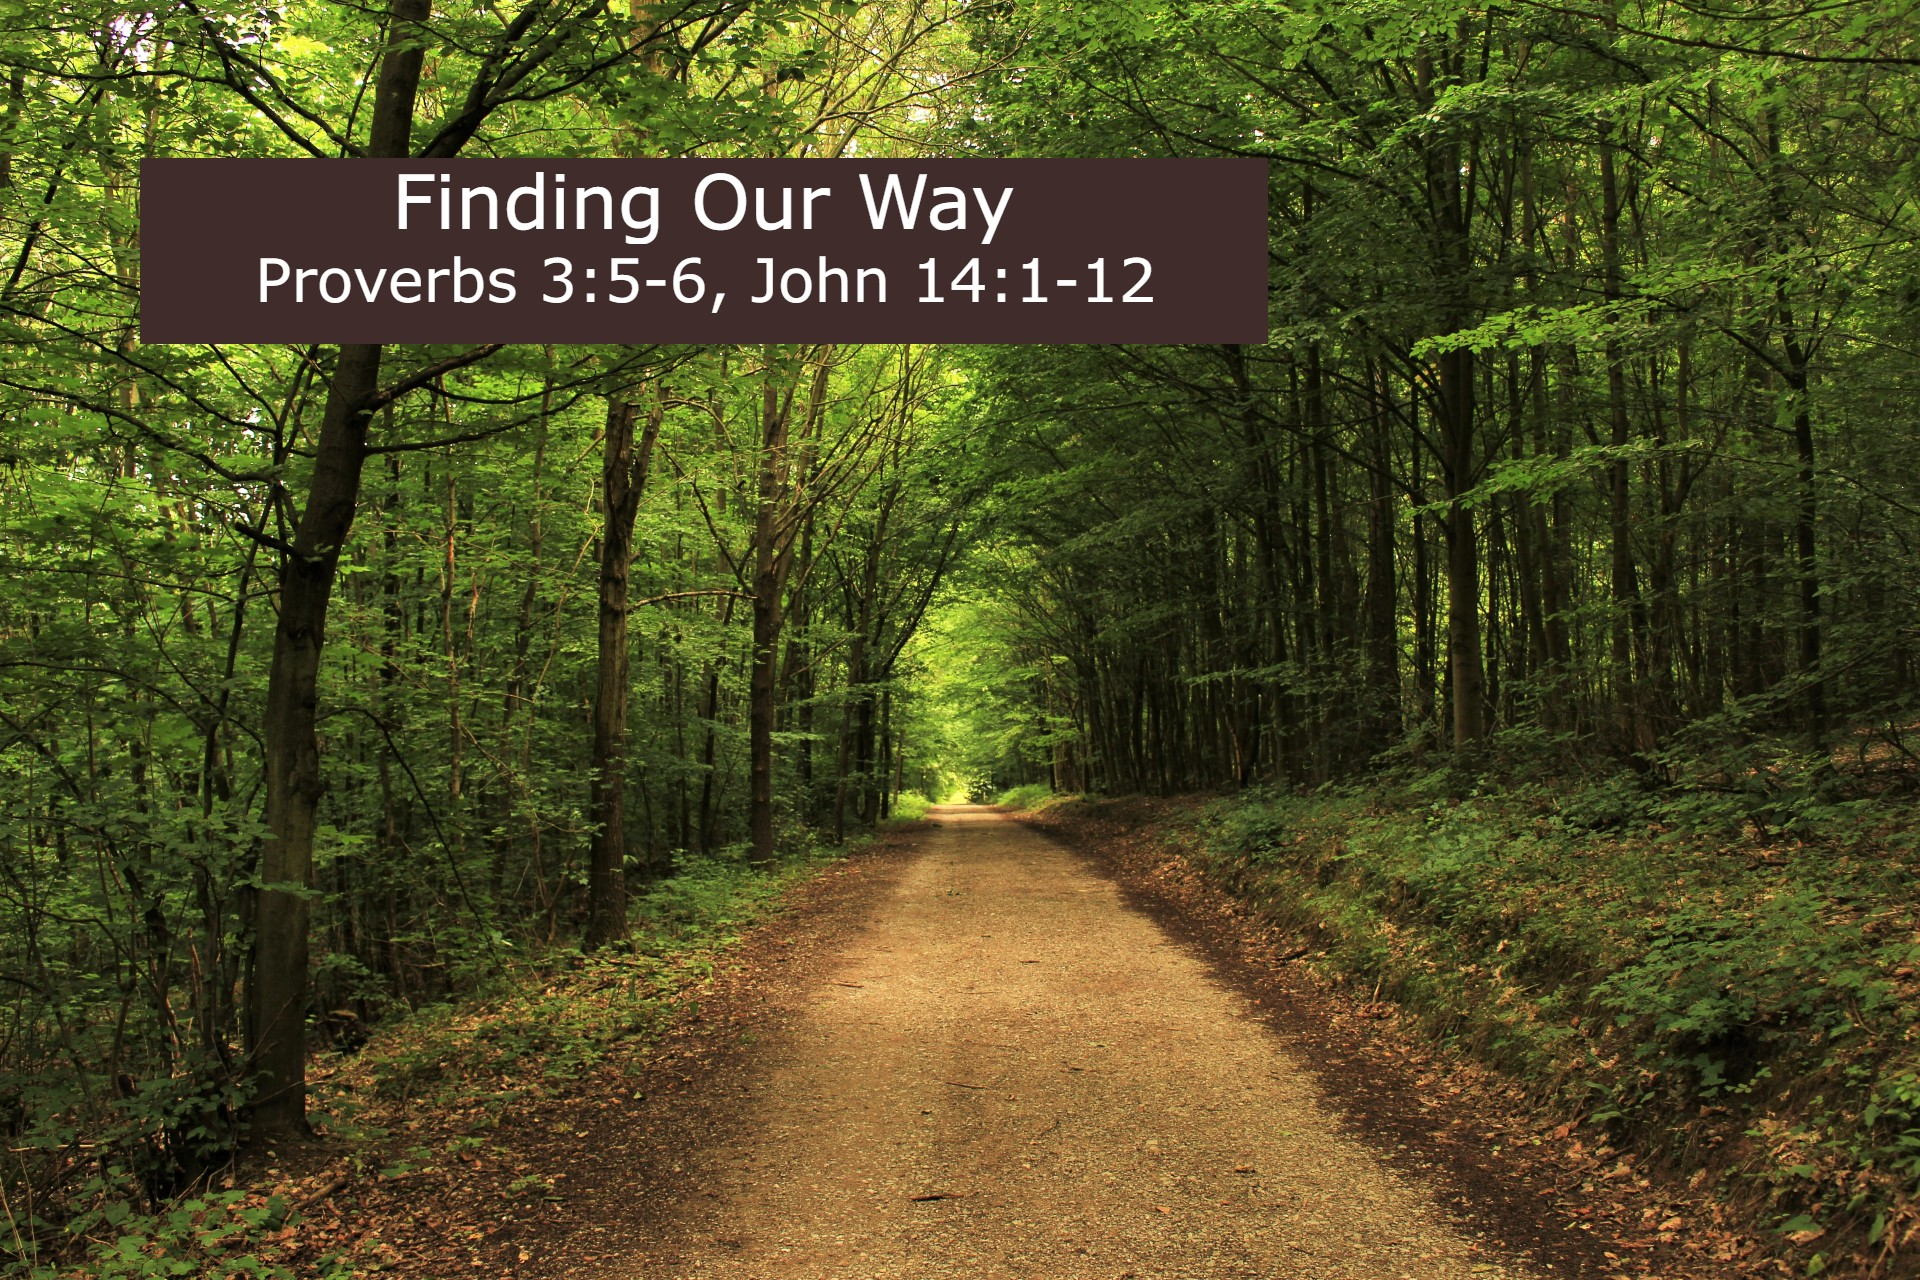 """photo of pathway with sermon title """"Finding Our Way"""""""